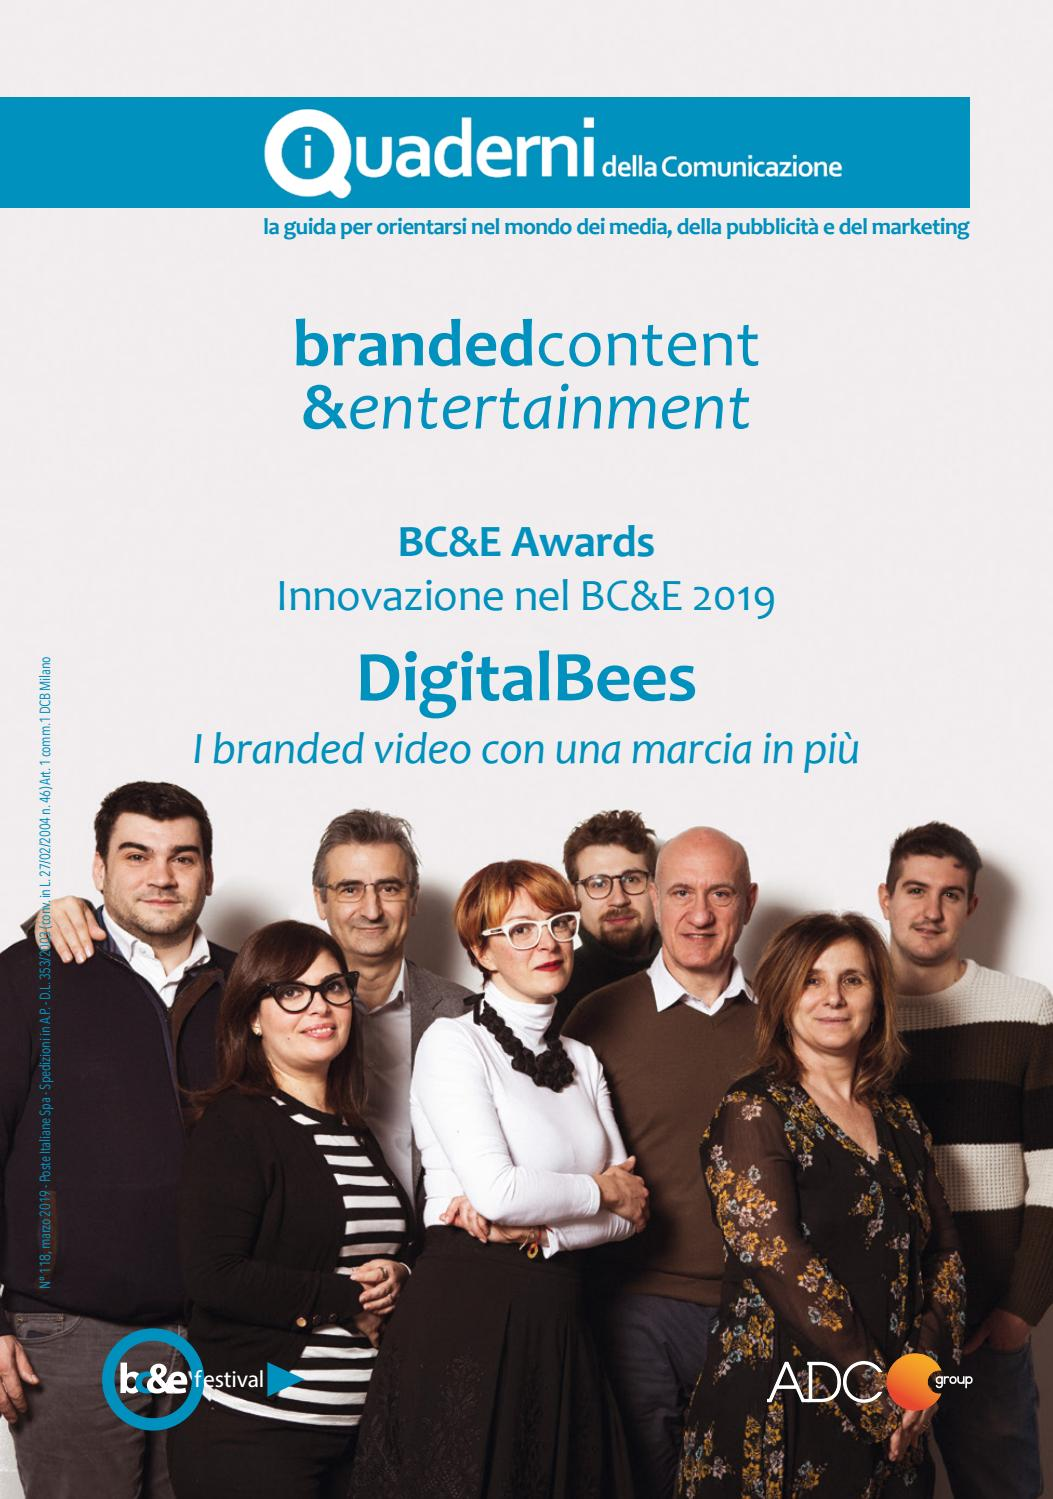 6944f6c51144 I Quaderni della Comunicazione 2019 - Branded Content   Entertainment by  ADC Group - issuu